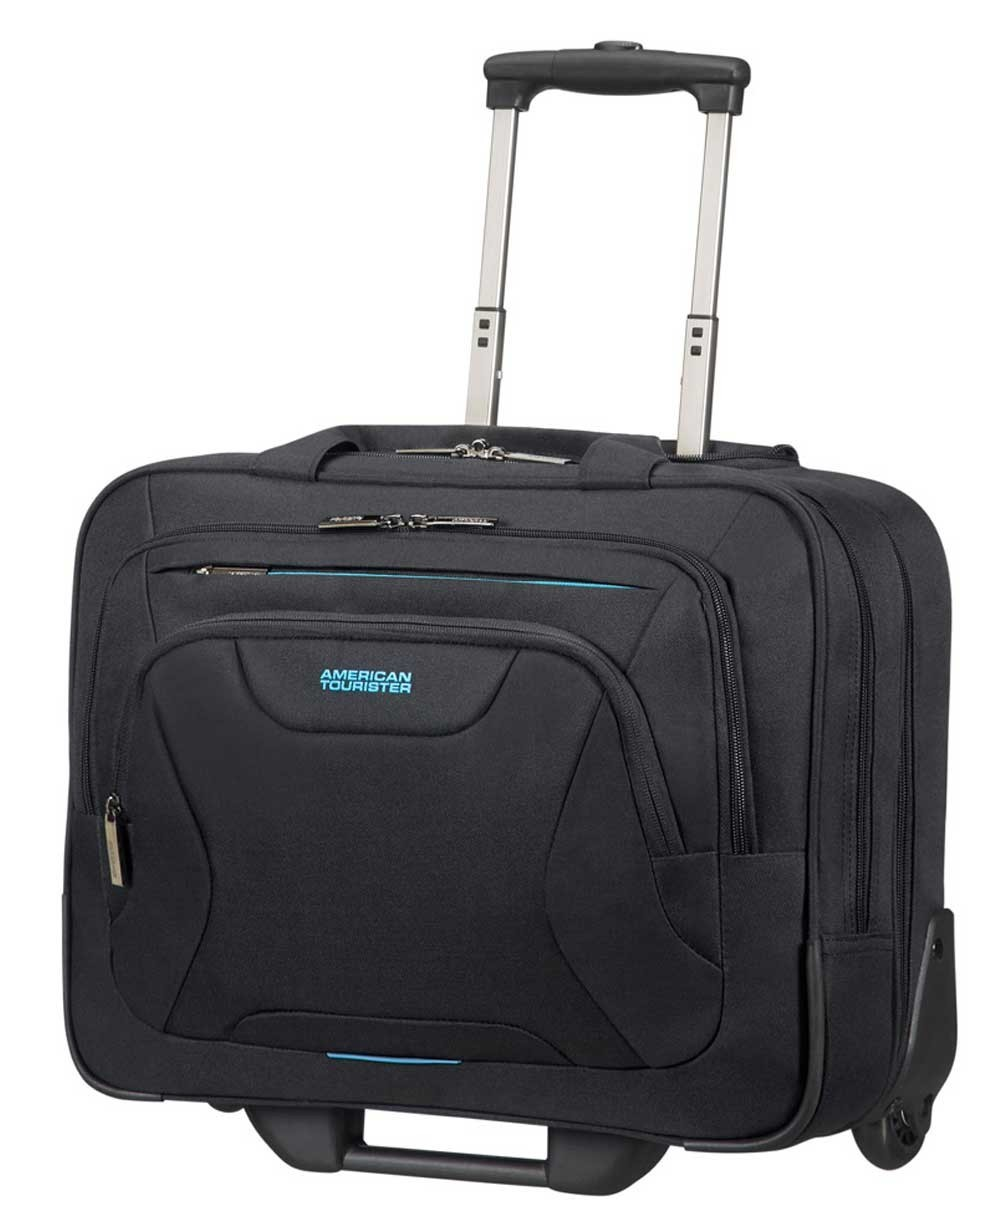 "American Tourister At Work 15.6"" Maletín con ruedas Negro (Foto )"